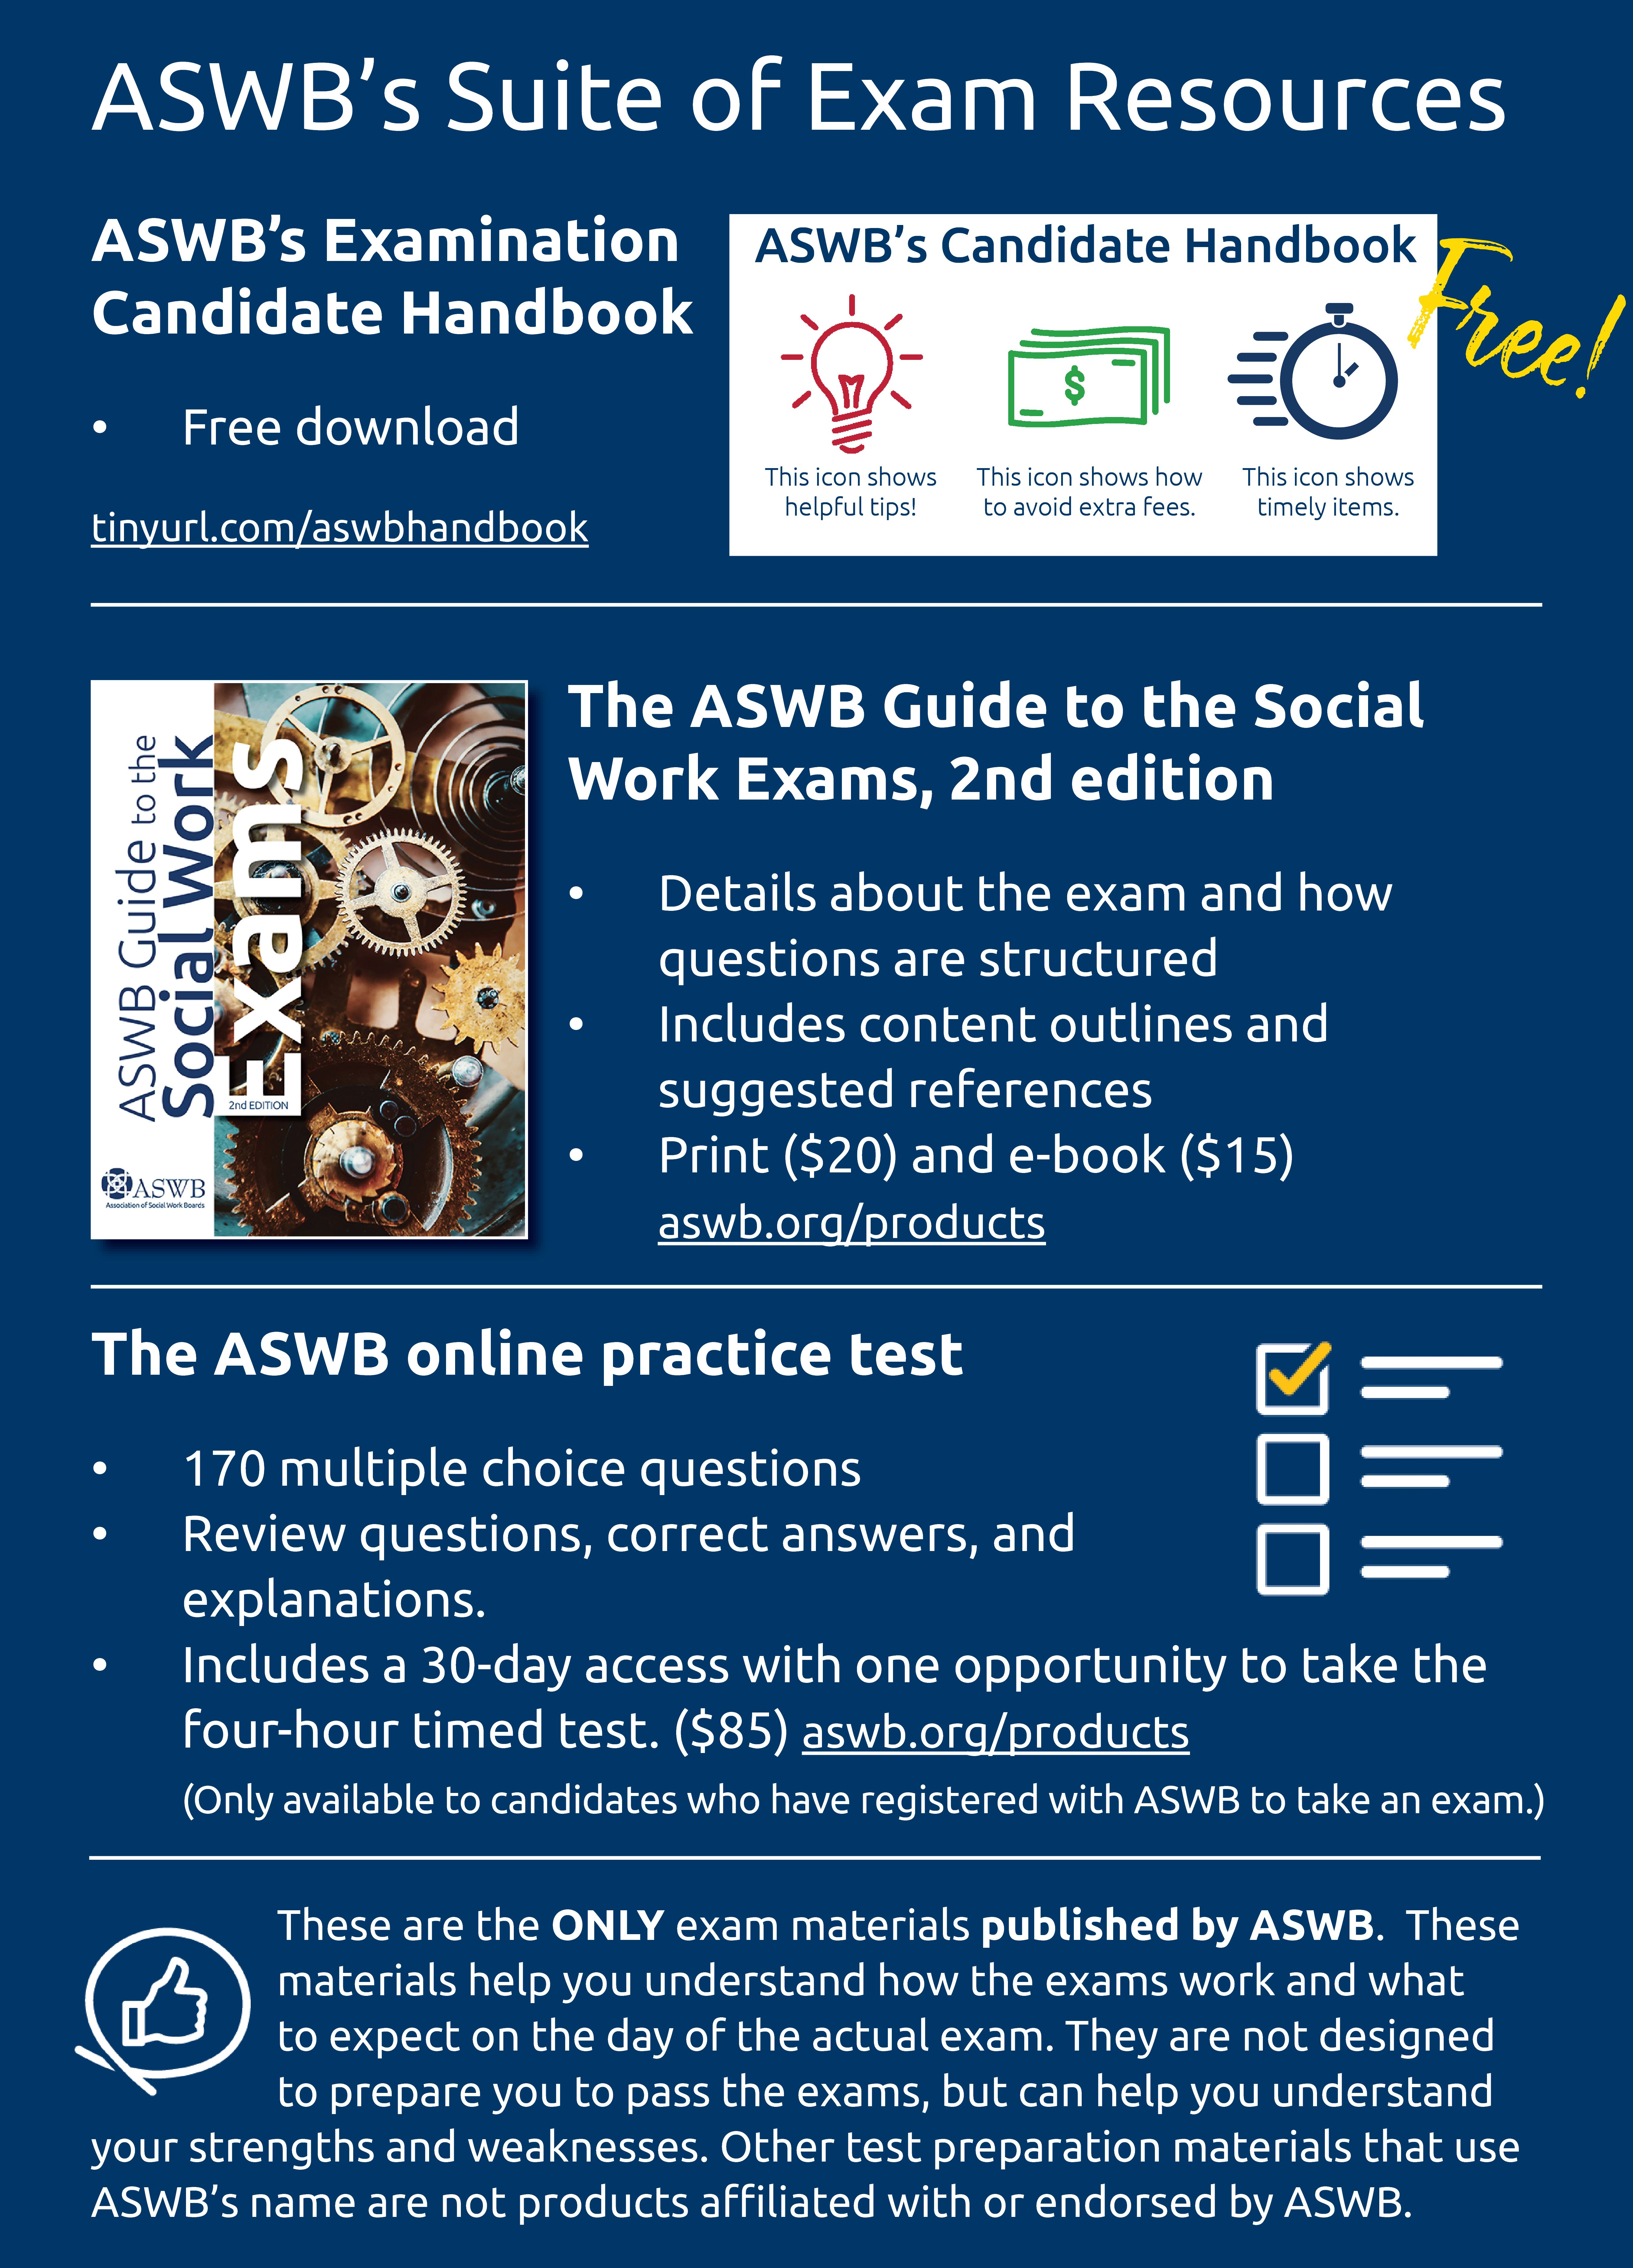 Preparing for the exam? These are the only exam materials published by ASWB.